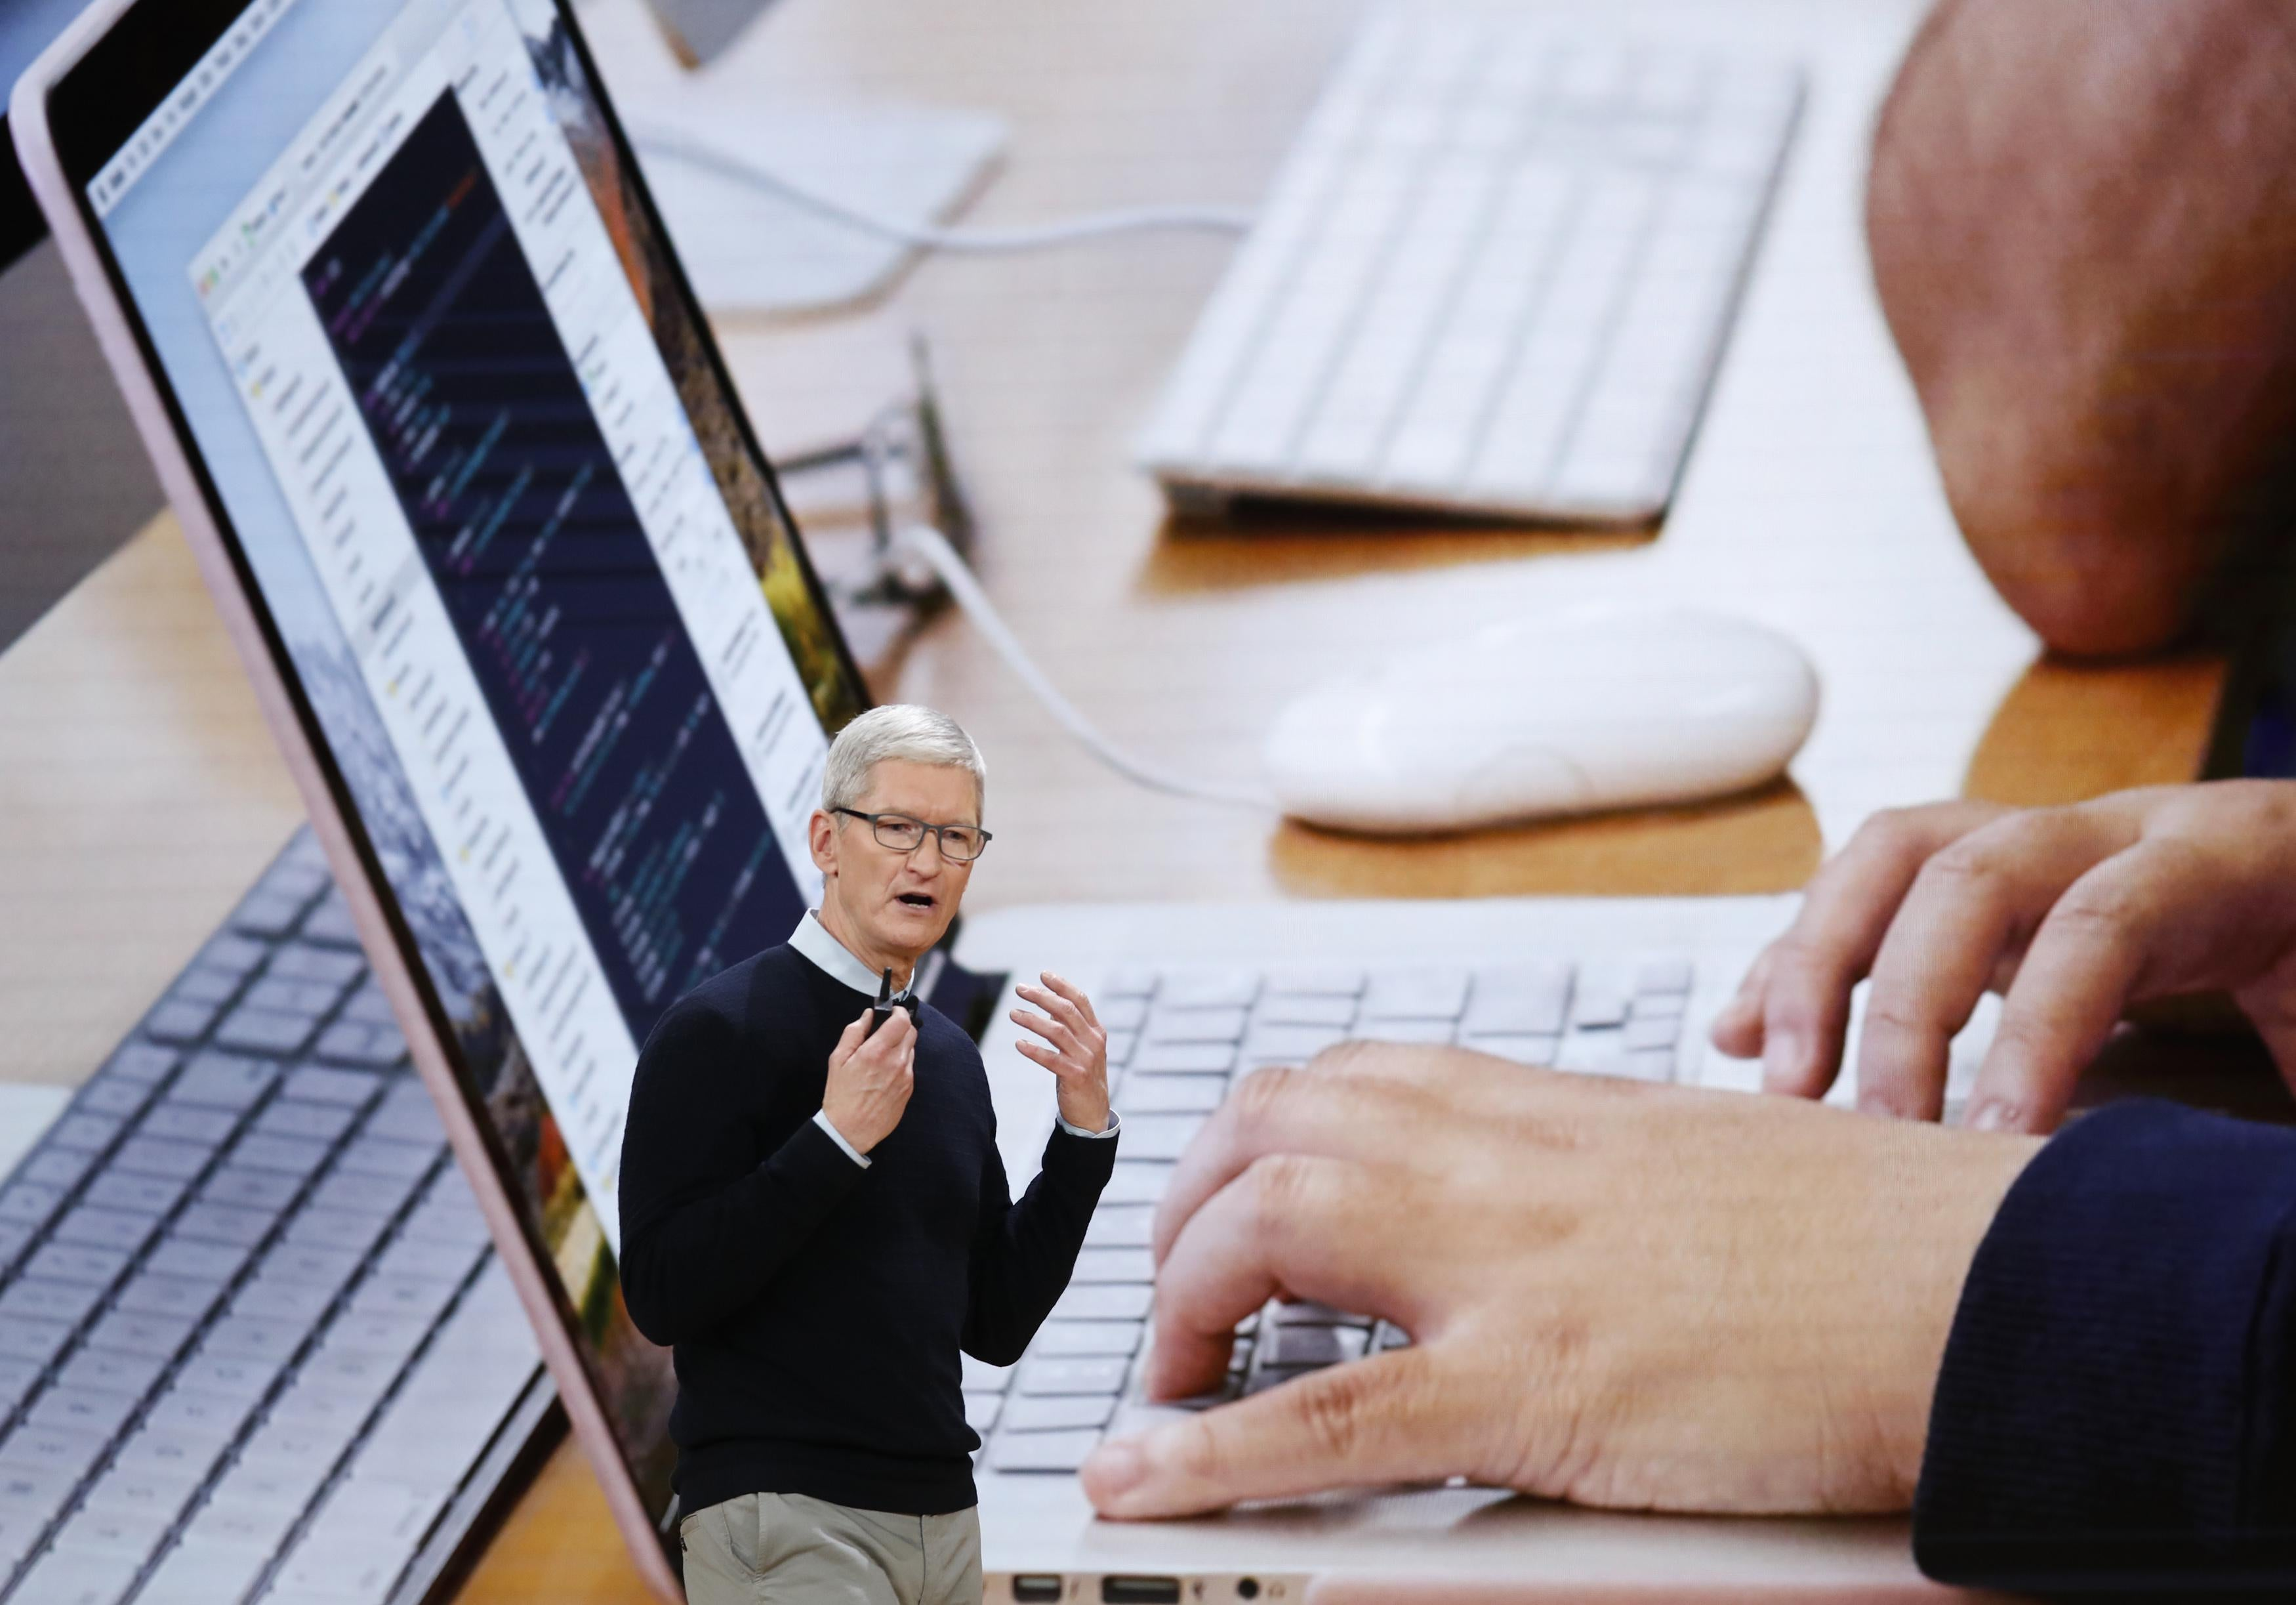 Apple CEO Tim Cook again calls for privacy regulations for companies like Facebook.